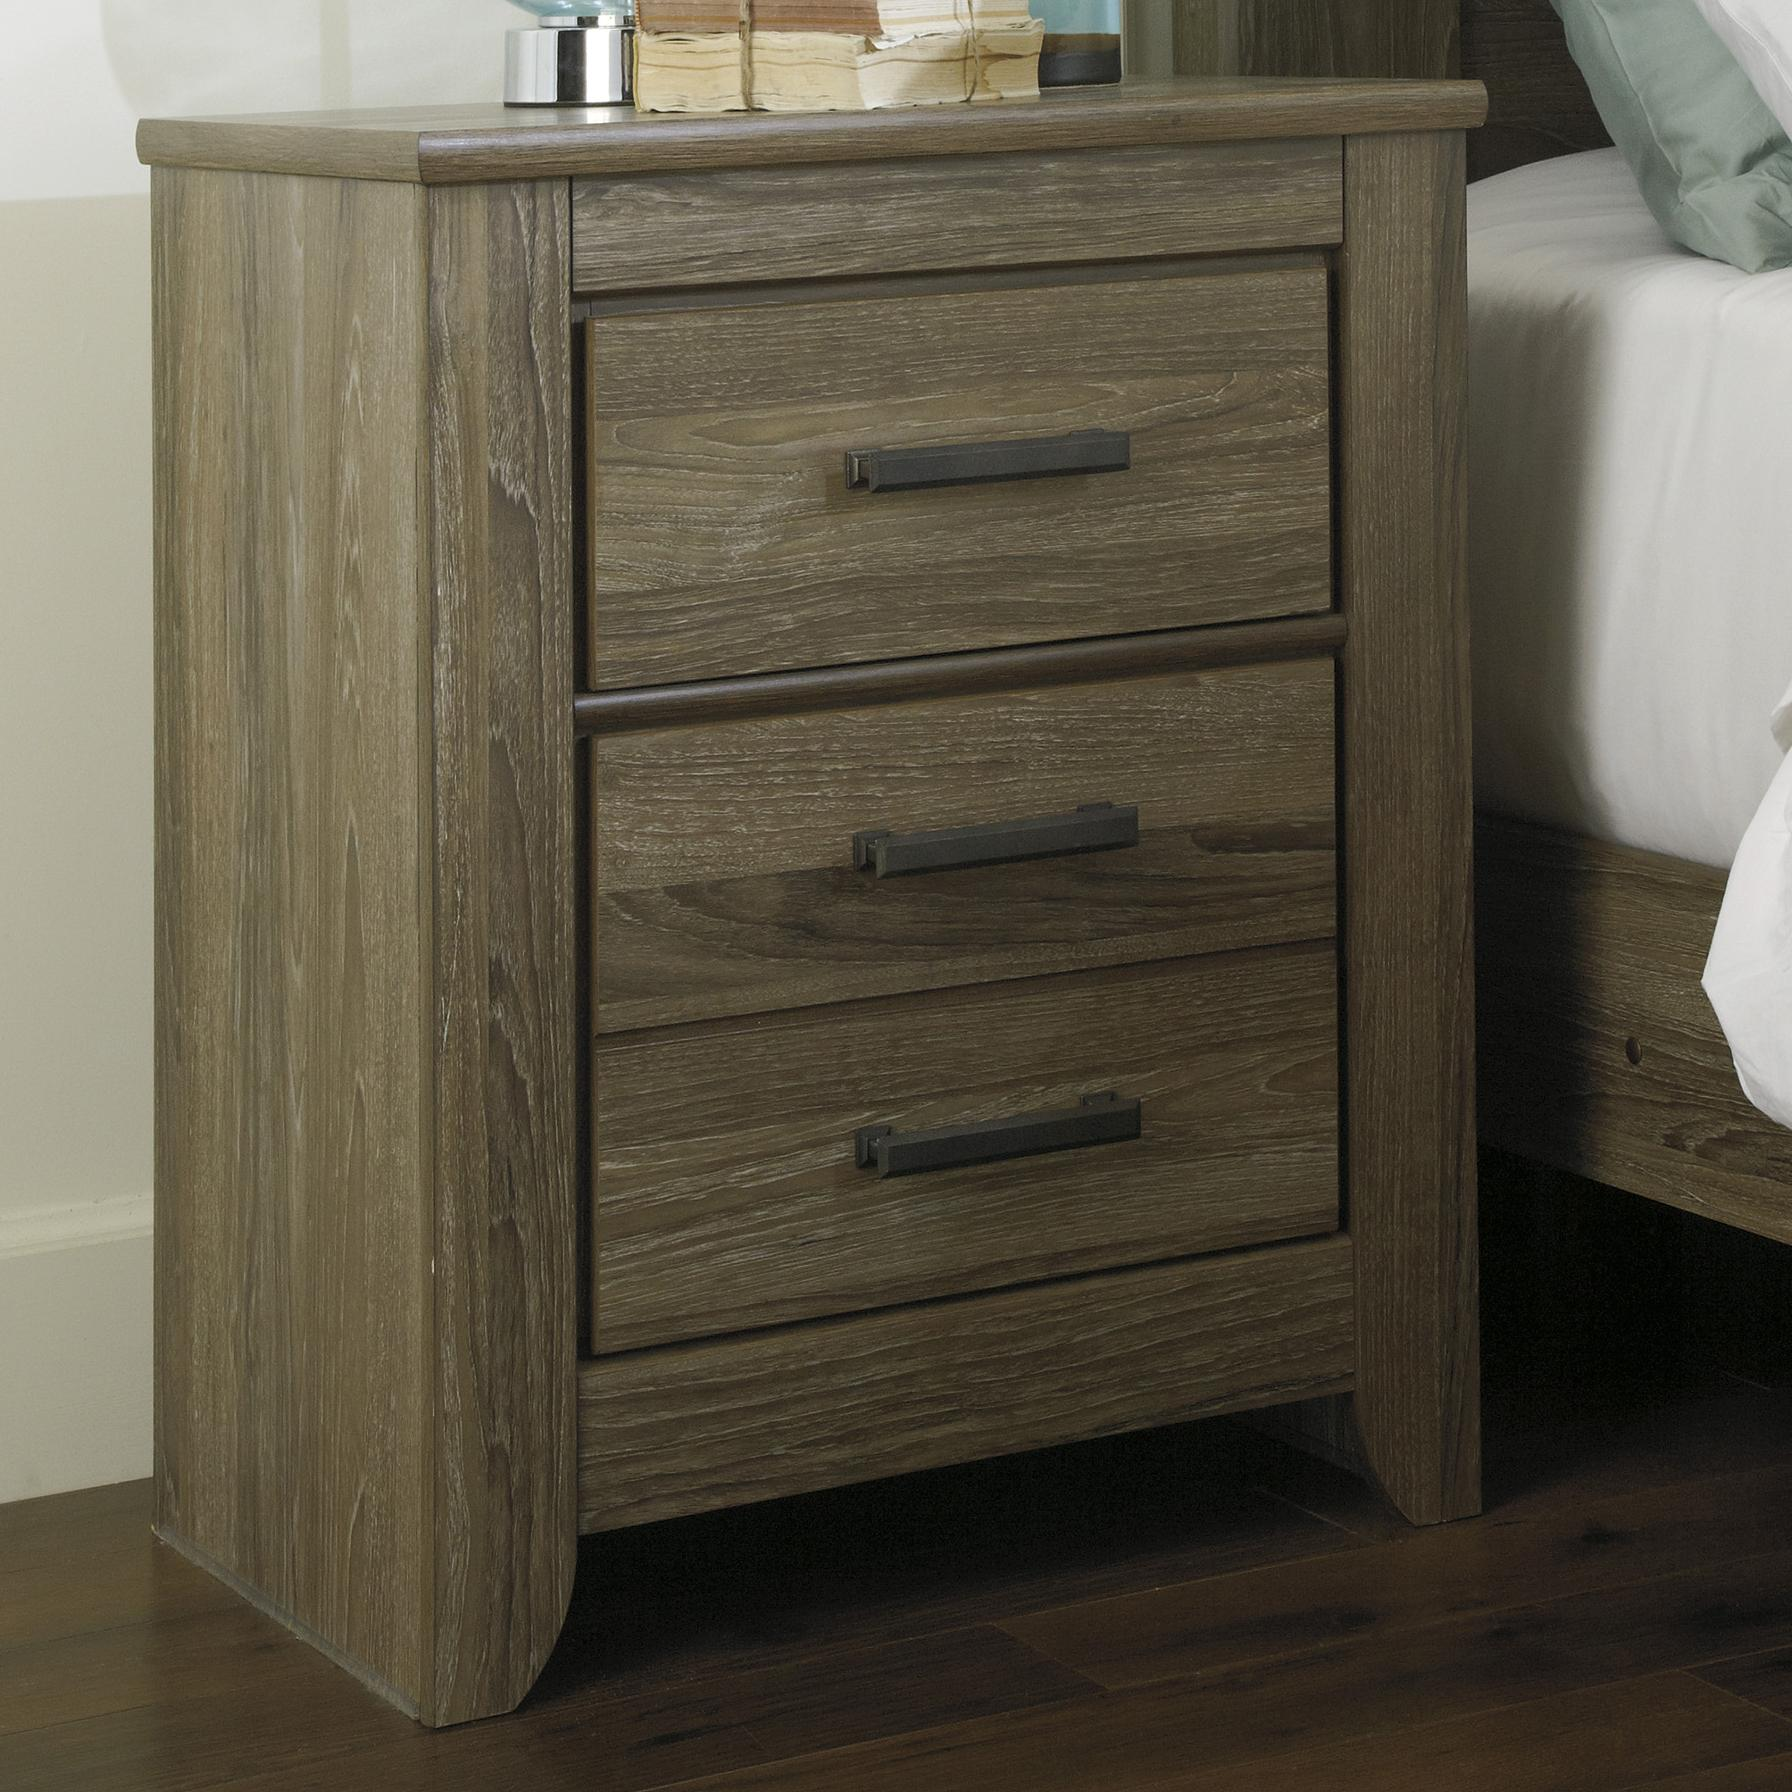 Zelen 2-Drawer Nightstand by Ashley at Morris Home